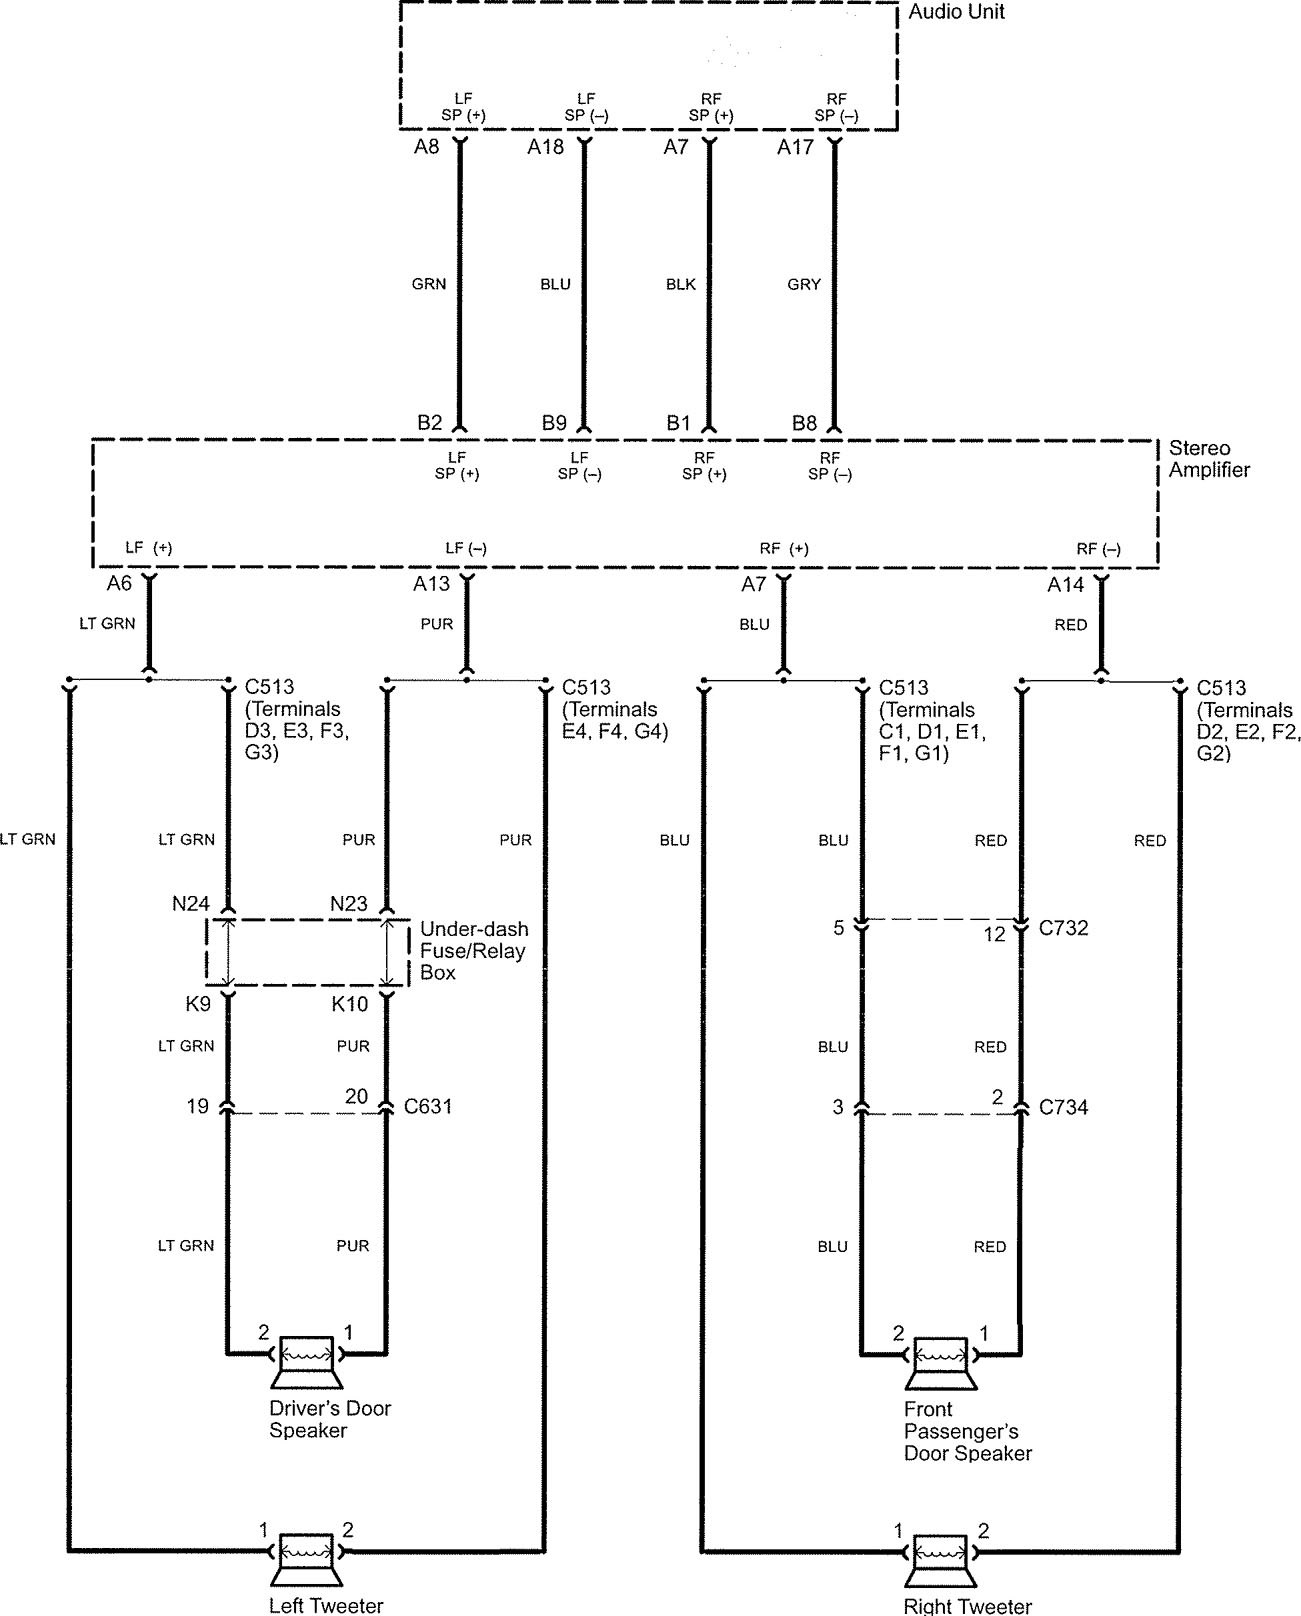 acura tl wiring diagram hands free link system 1 3 2005 acura tl (2006) wiring diagrams hands free link system 2010 Chevy Aveo Oil Cooler to Transmission Diagram at bakdesigns.co